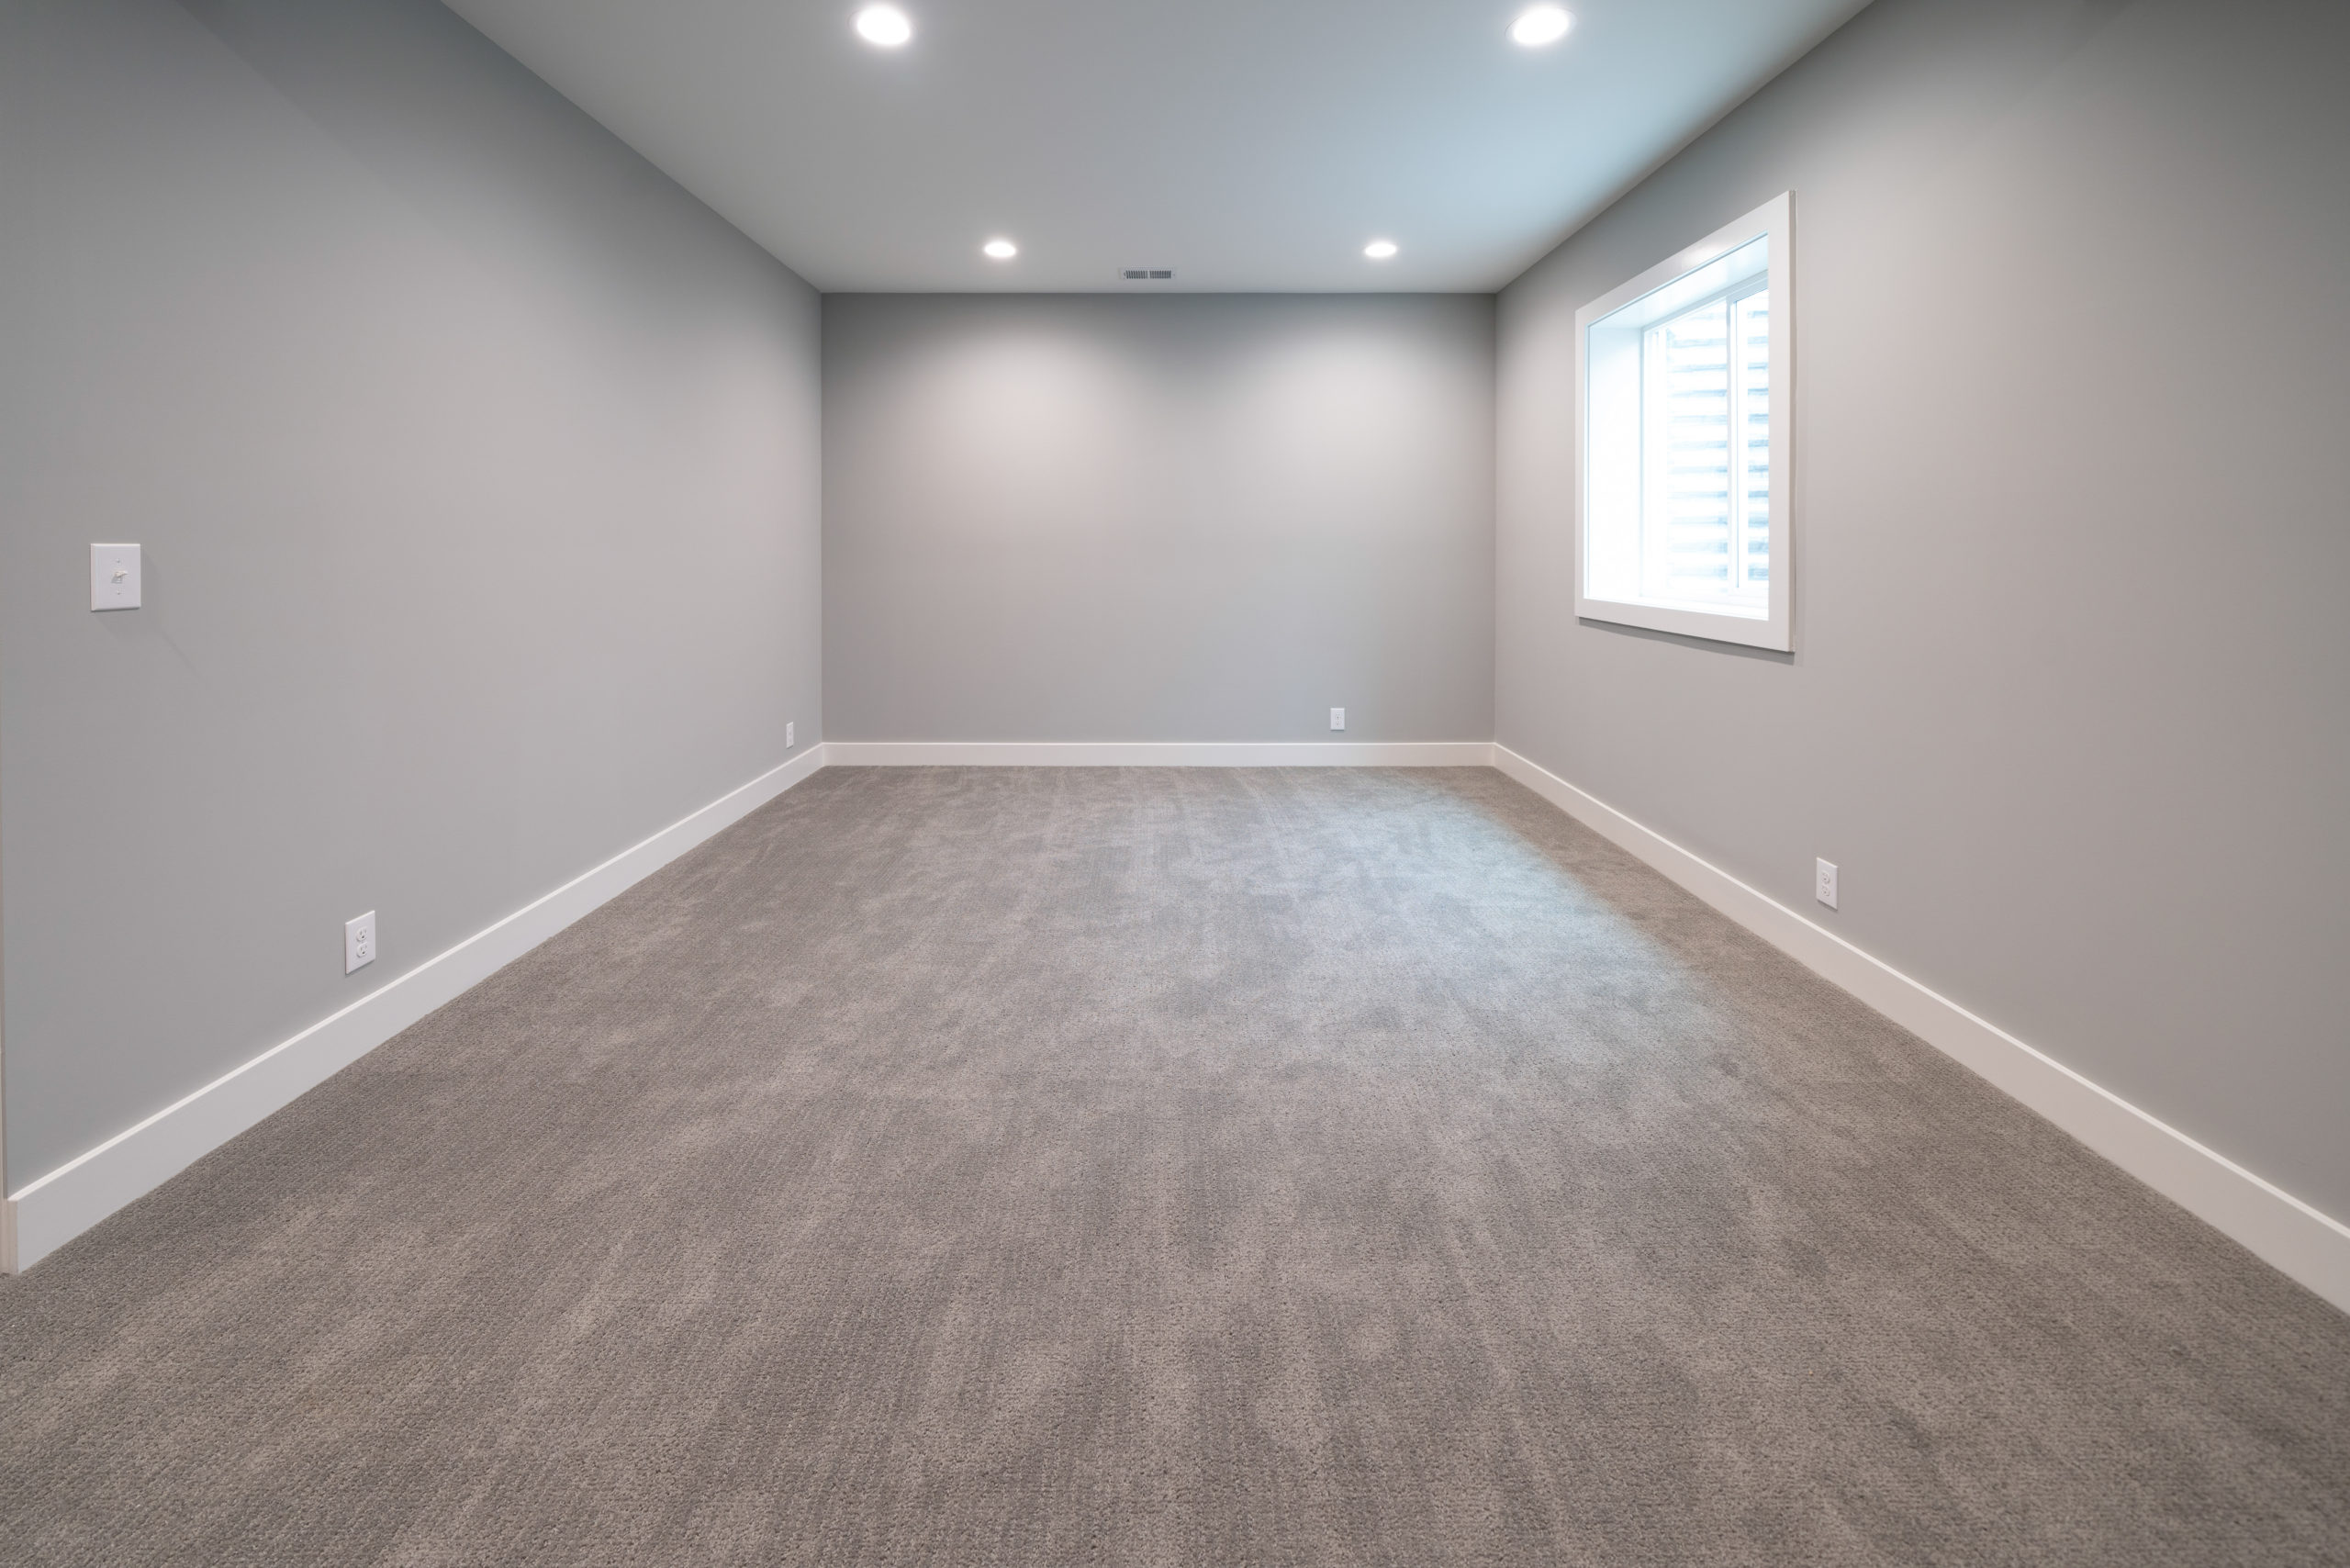 concrete flooring in finished basement